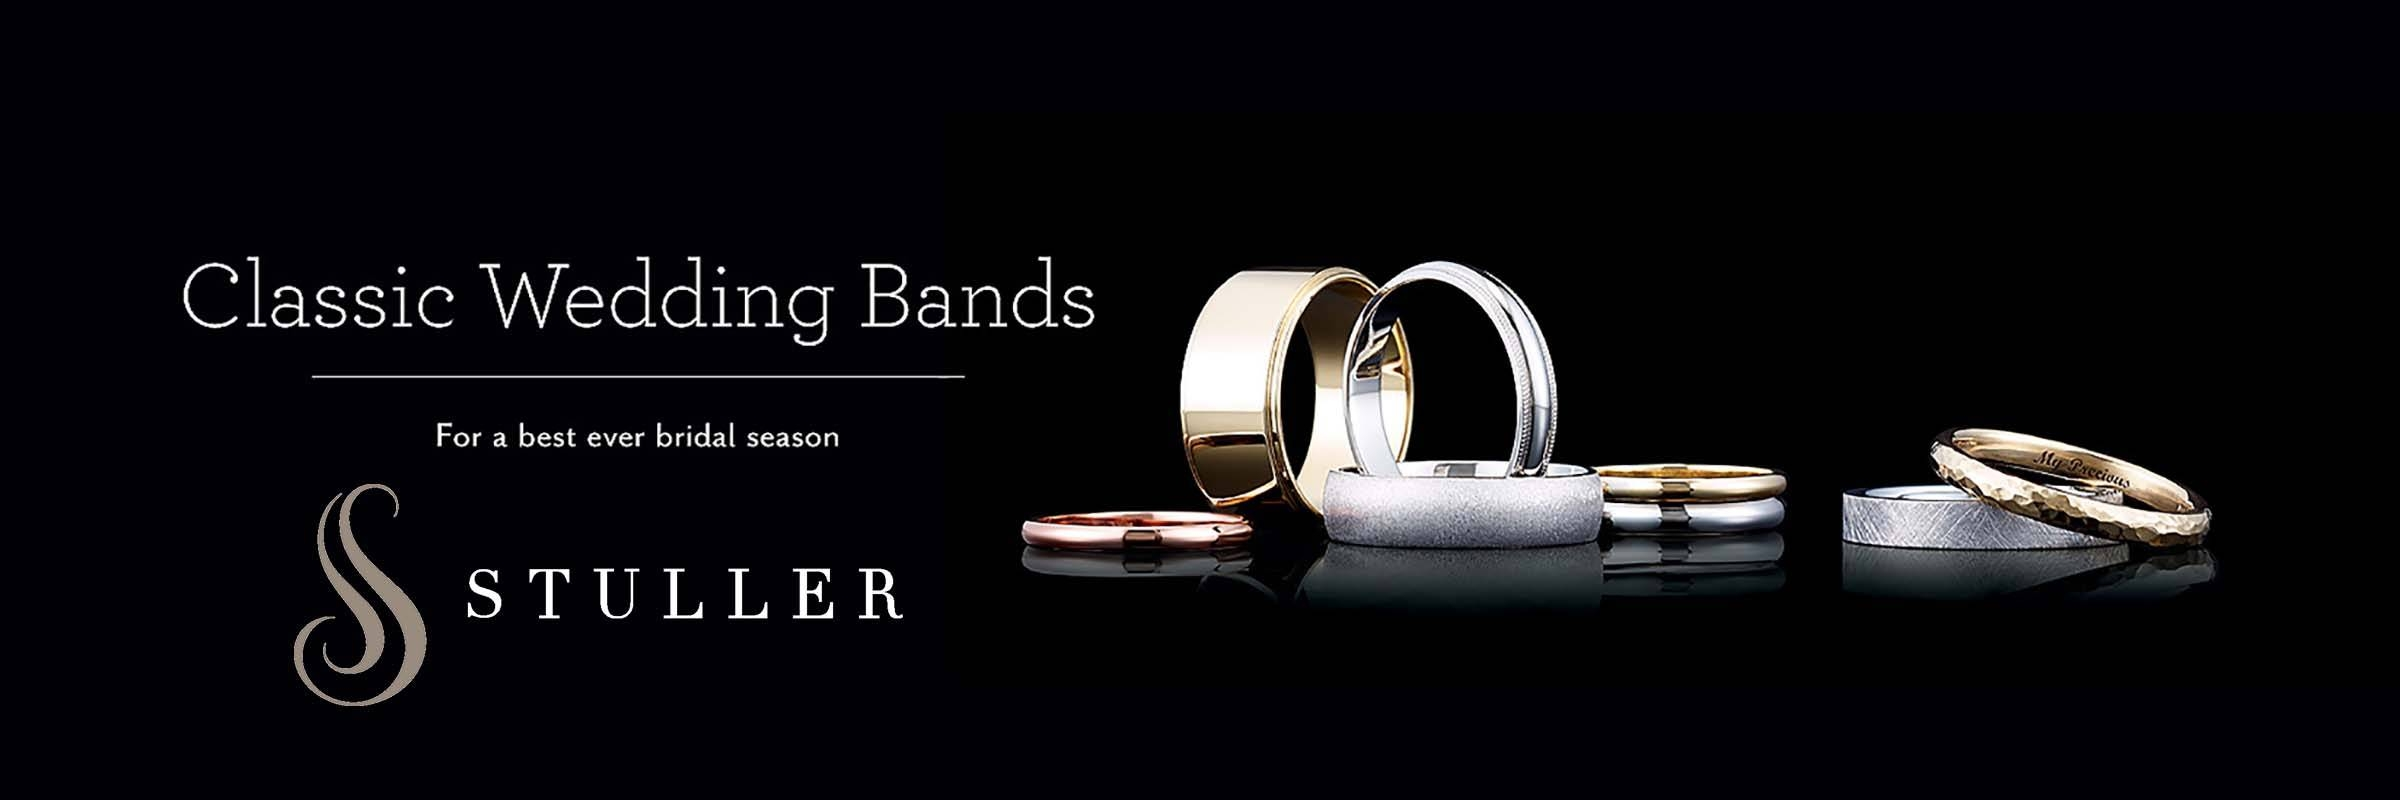 Ideas About Stuller Wedding Bands, – Love Quotes 101 Inside Stuller Wedding Bands (Gallery 1 of 15)